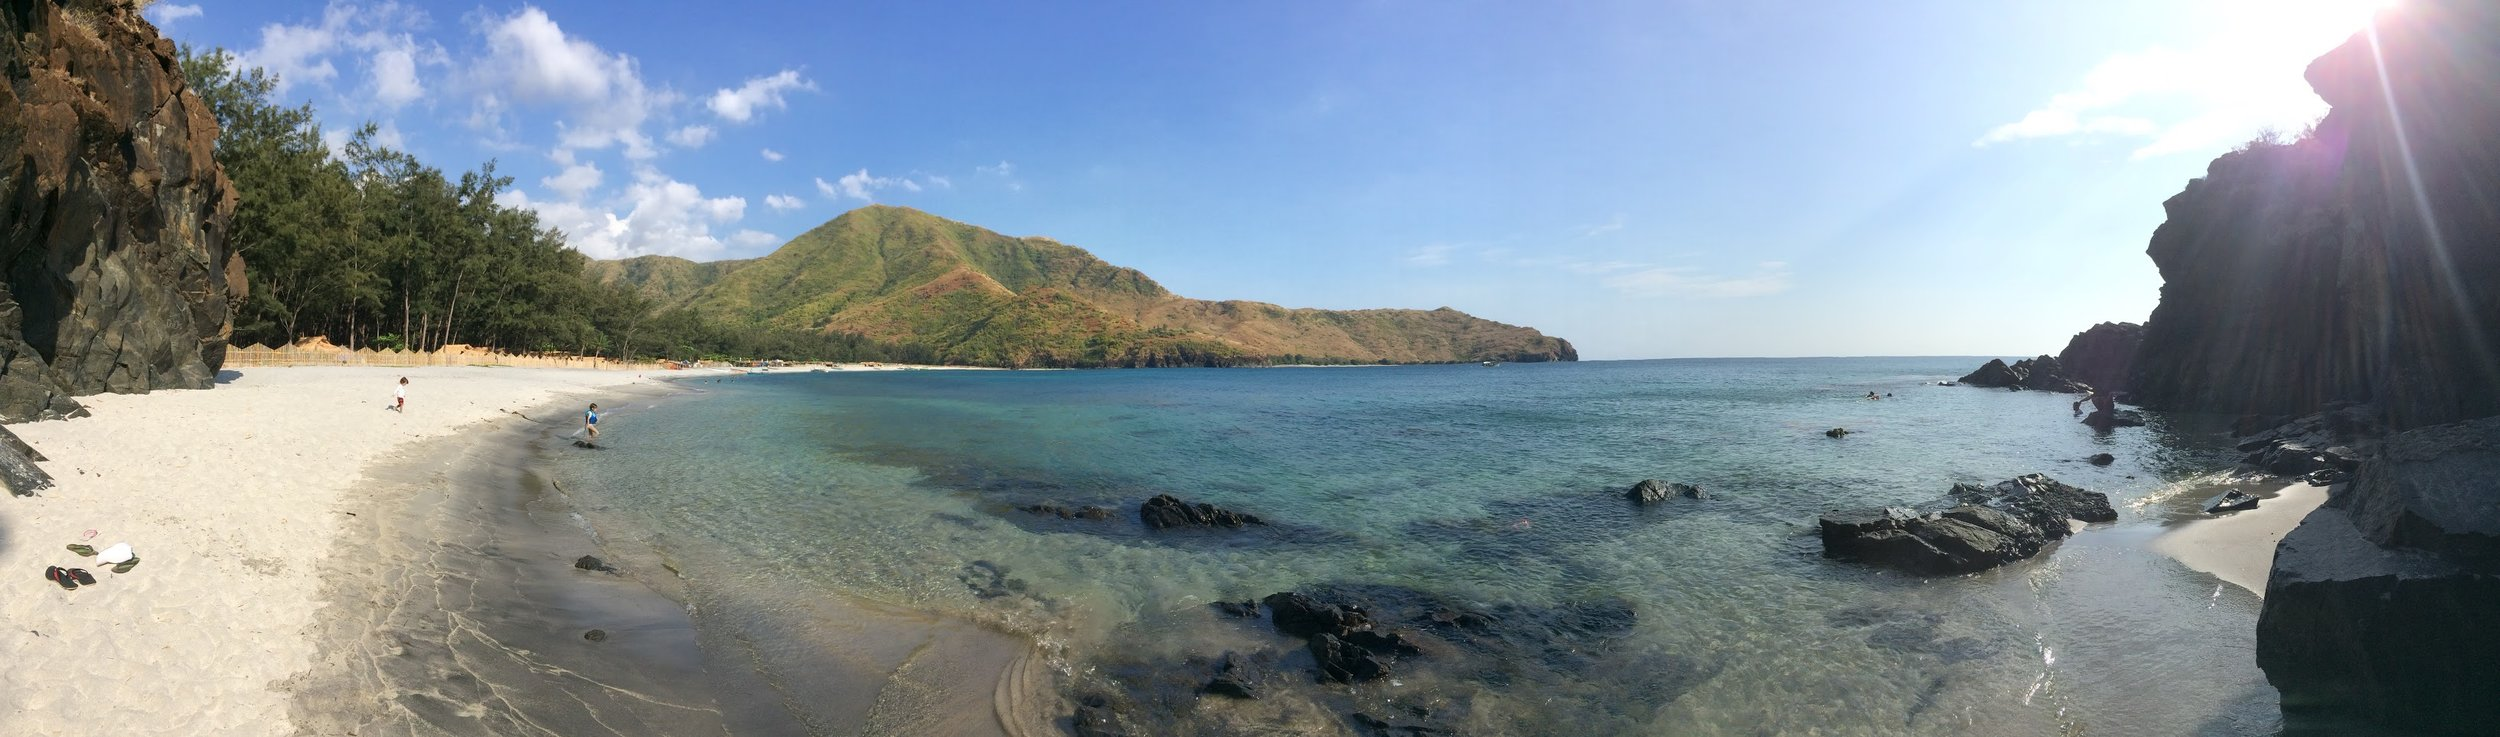 Panoramic shot at Anawangin cove